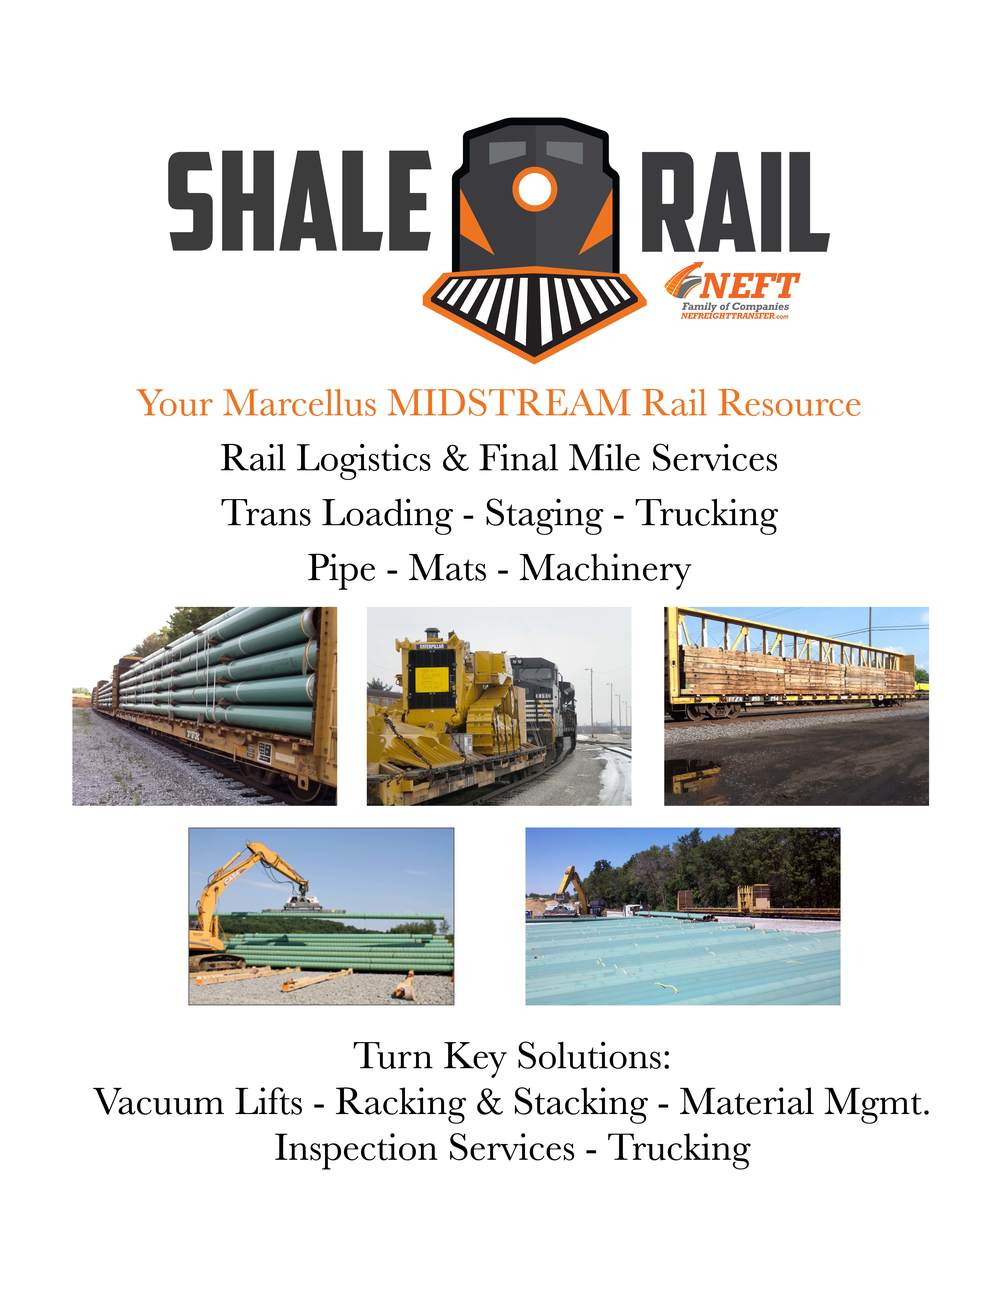 Pages1ShaleRail Midstream 2015.jpg